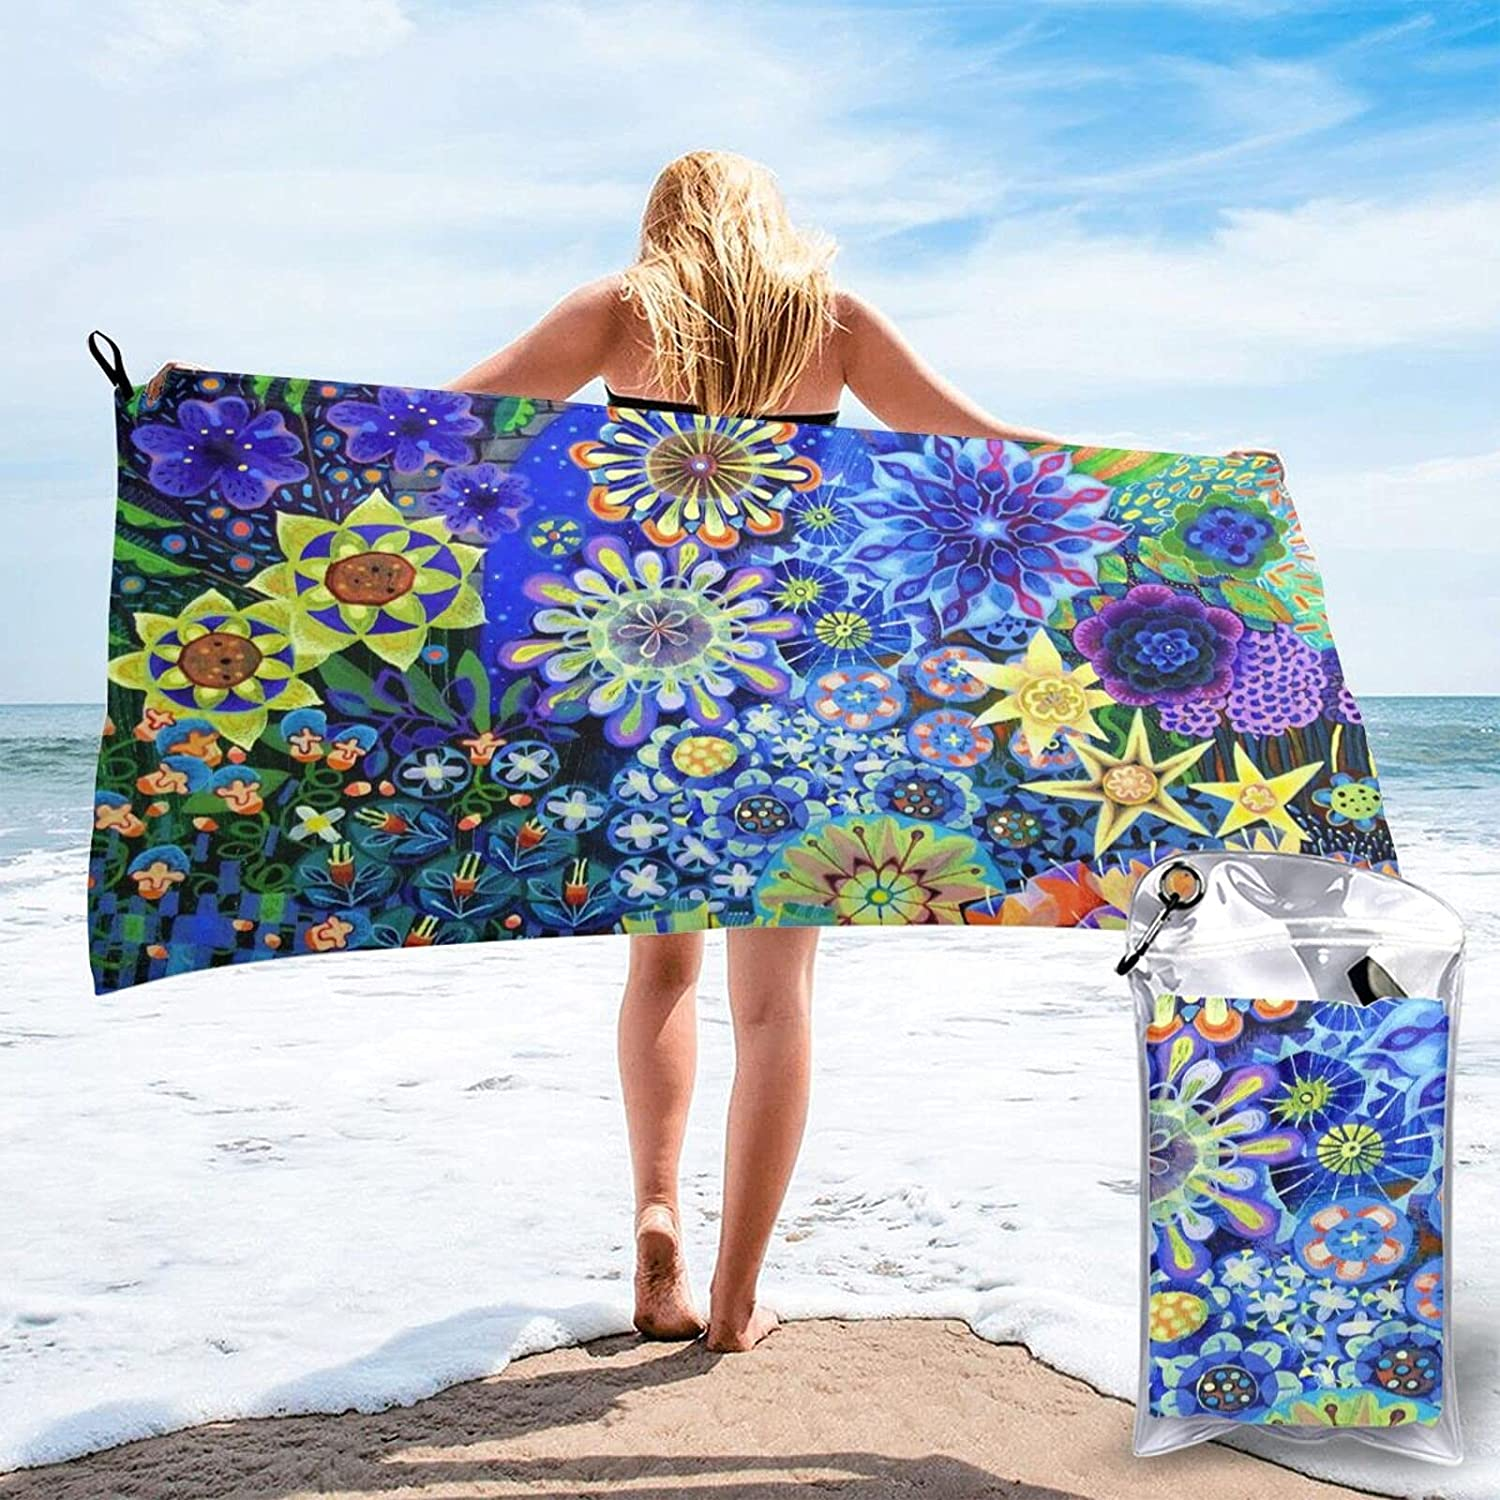 Zuxidsai Beach Towel Floral Boho Bohemian Max 40% OFF Quick Recommended Dry Tow Colorful